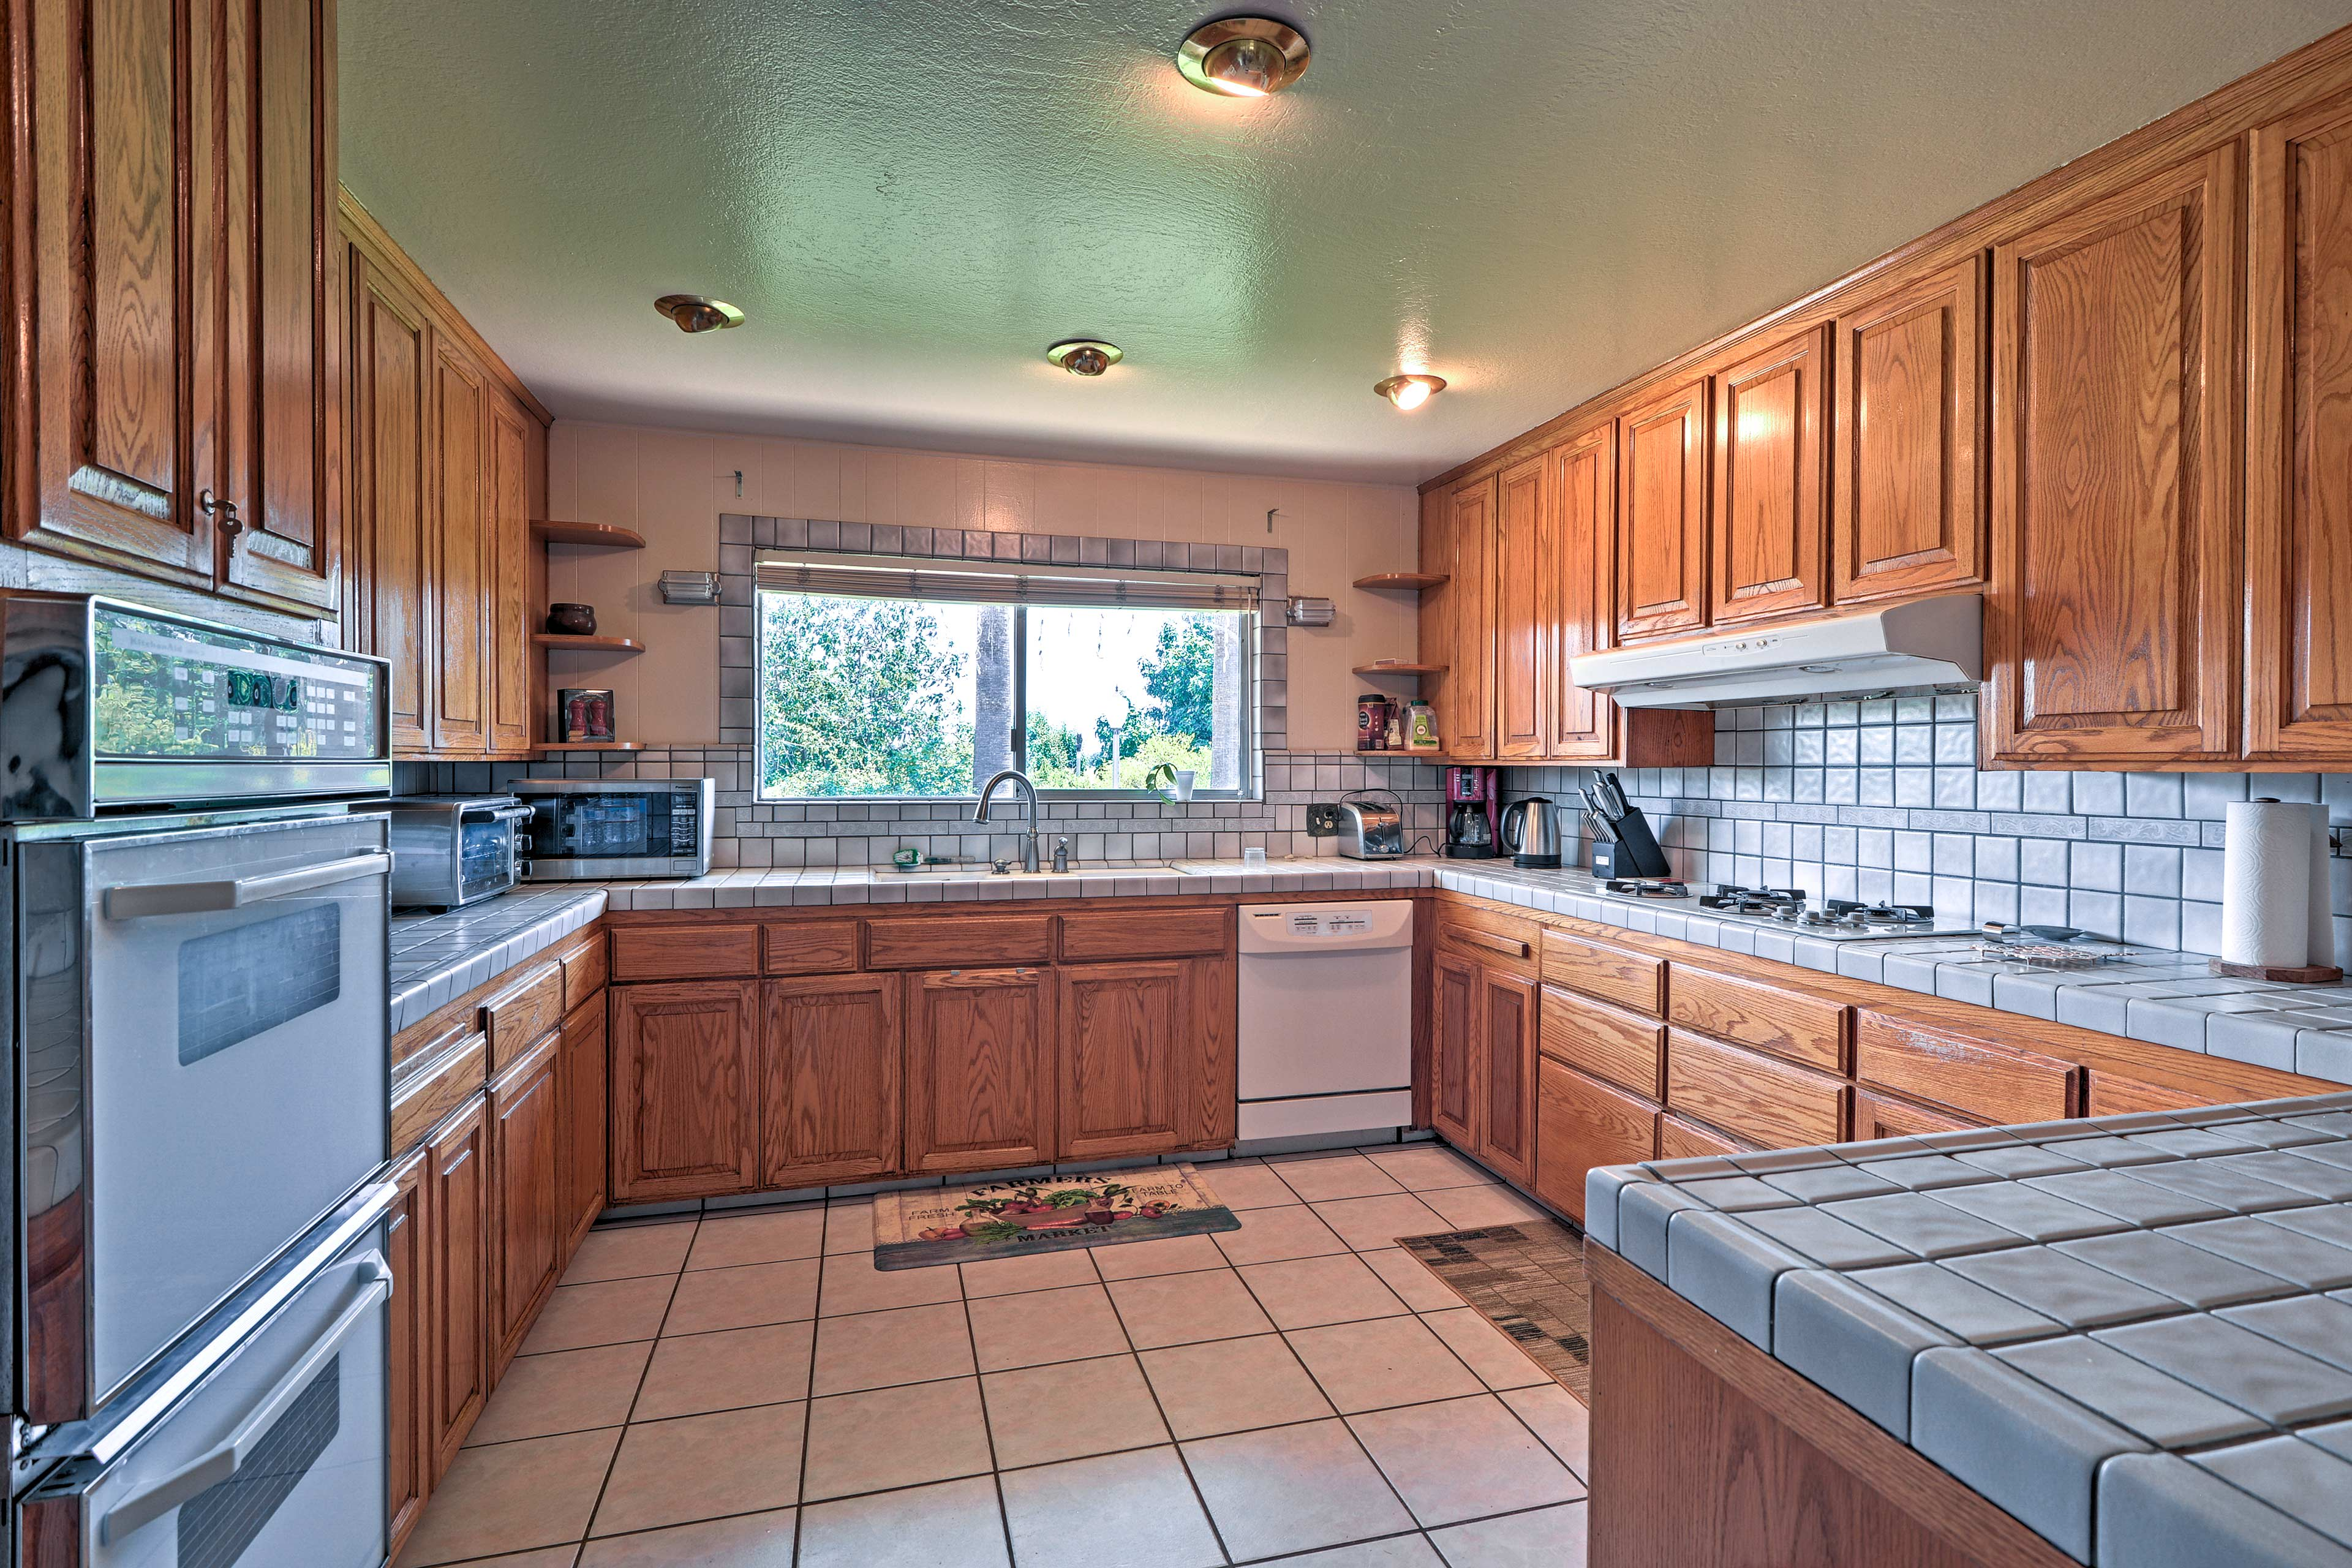 The fully equipped kitchen has everything you need to cook with ease!